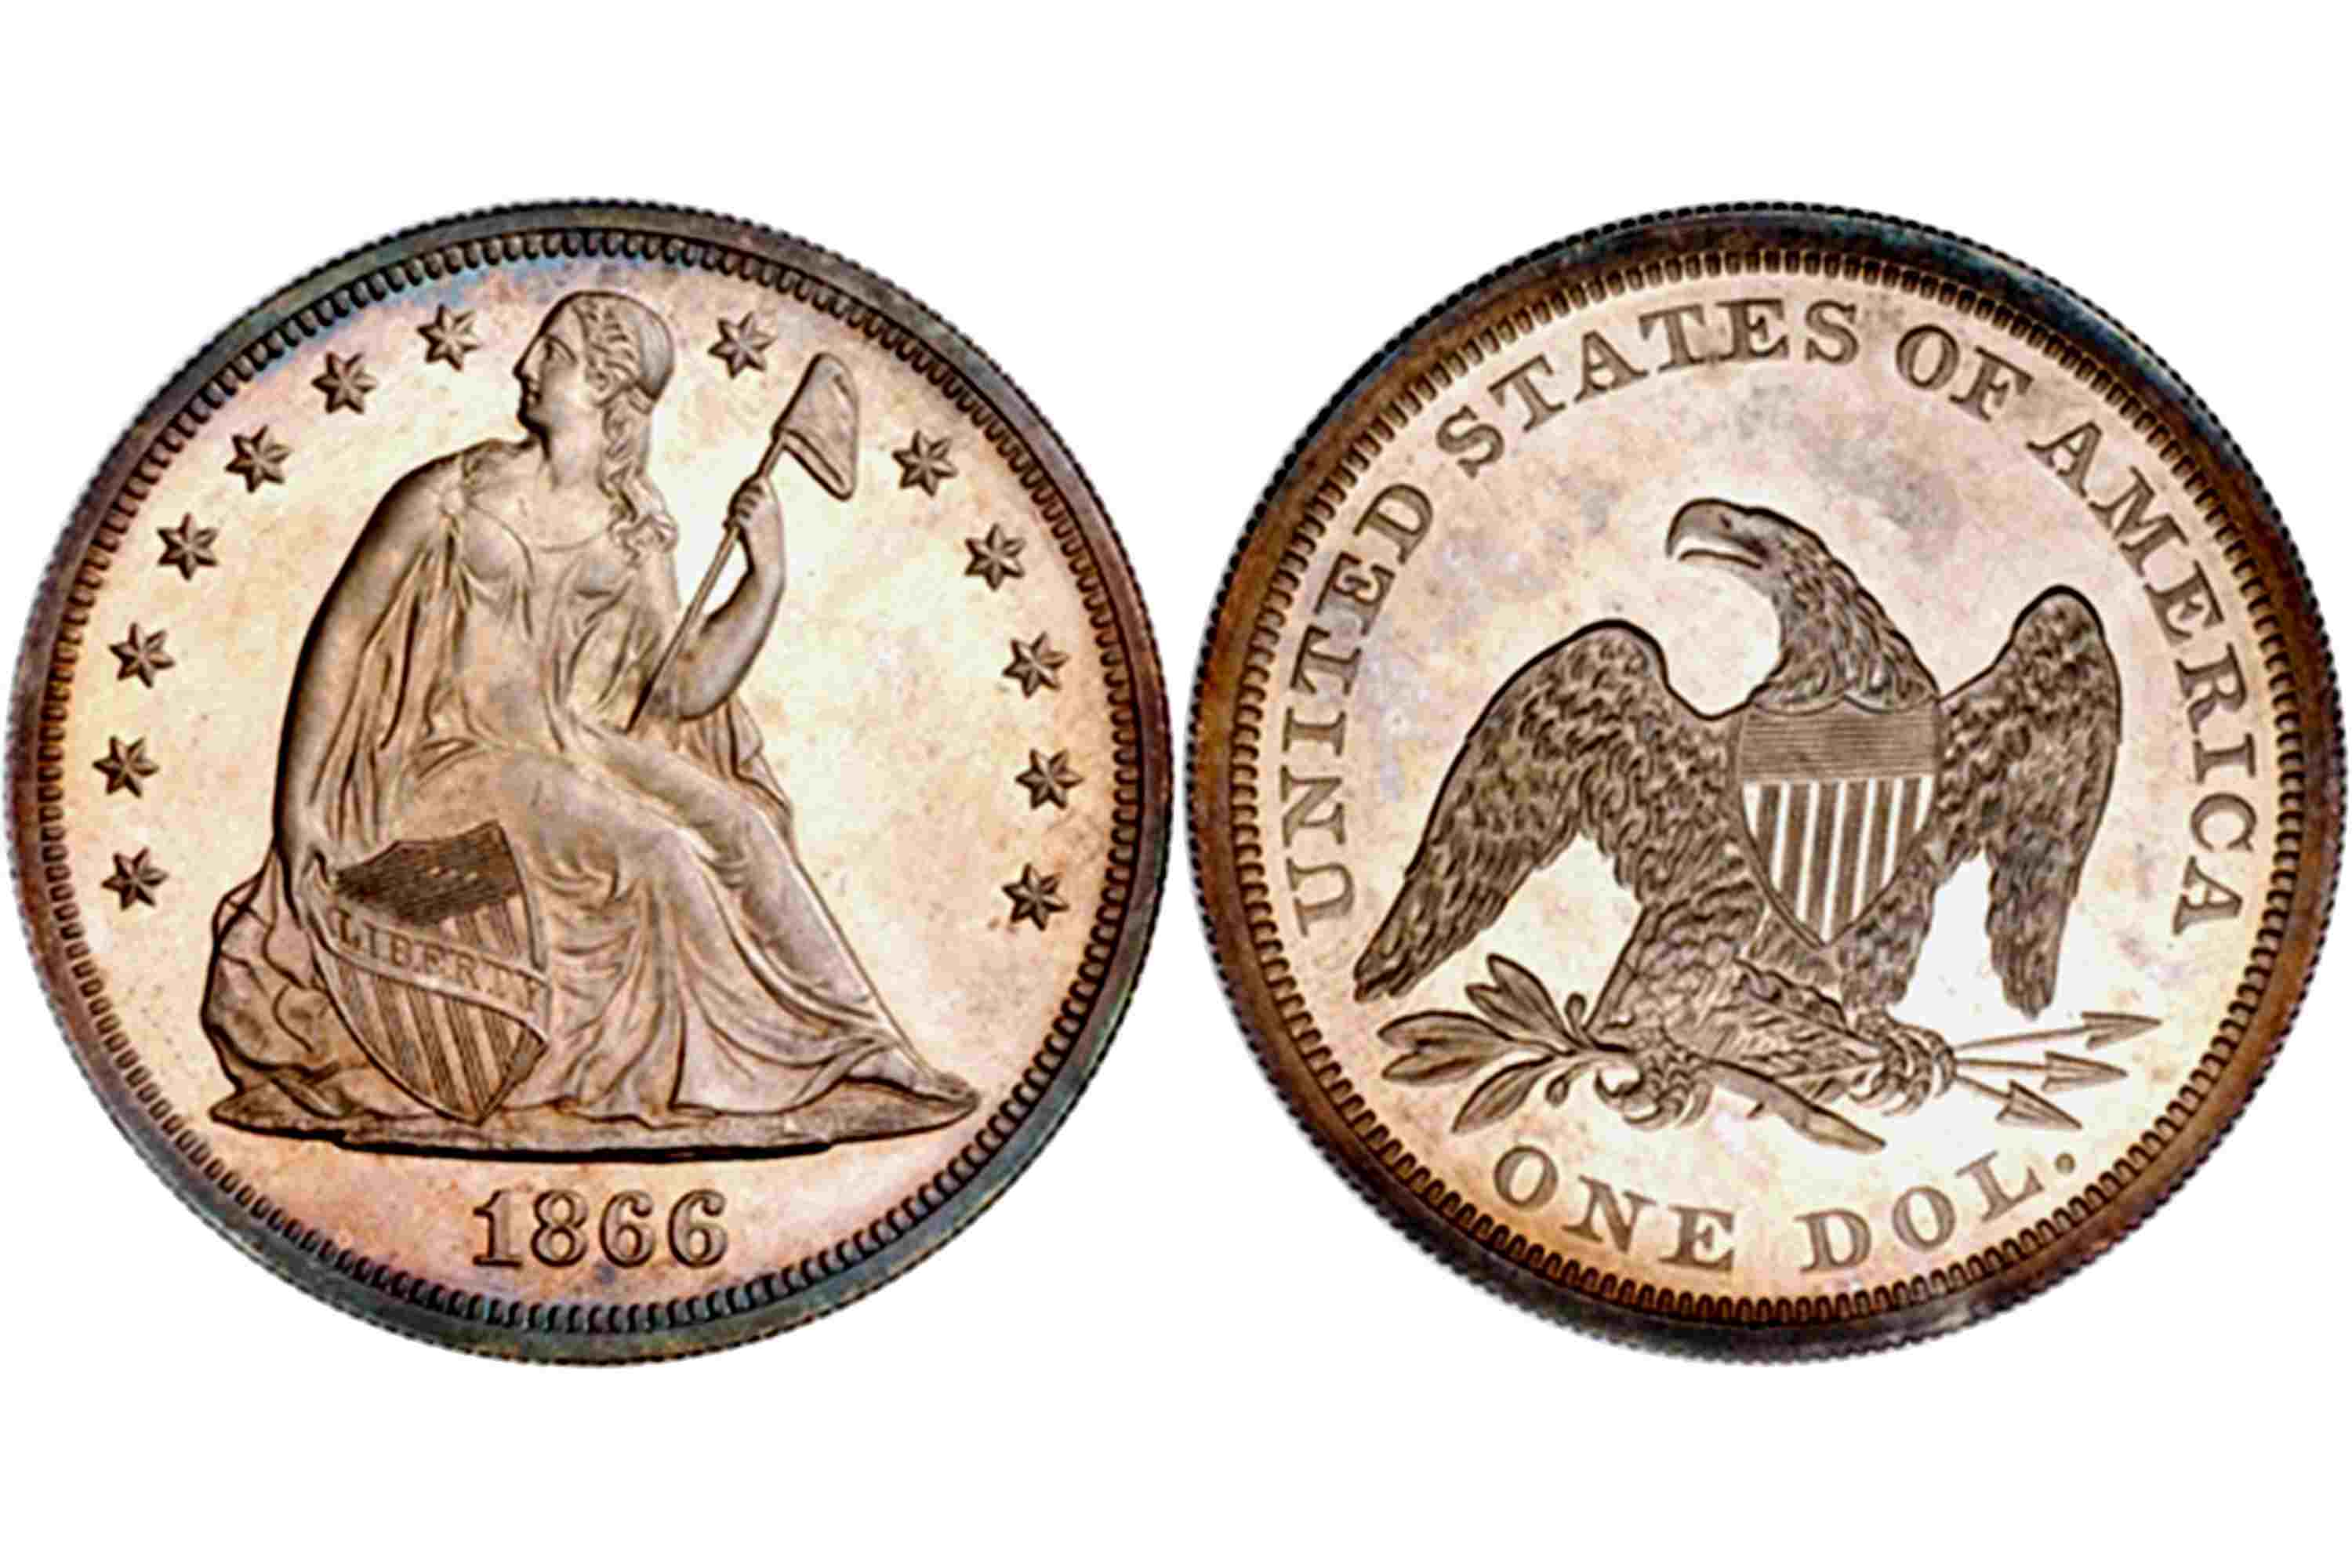 1866 Proof Liberty Seated Dollar, No Motto